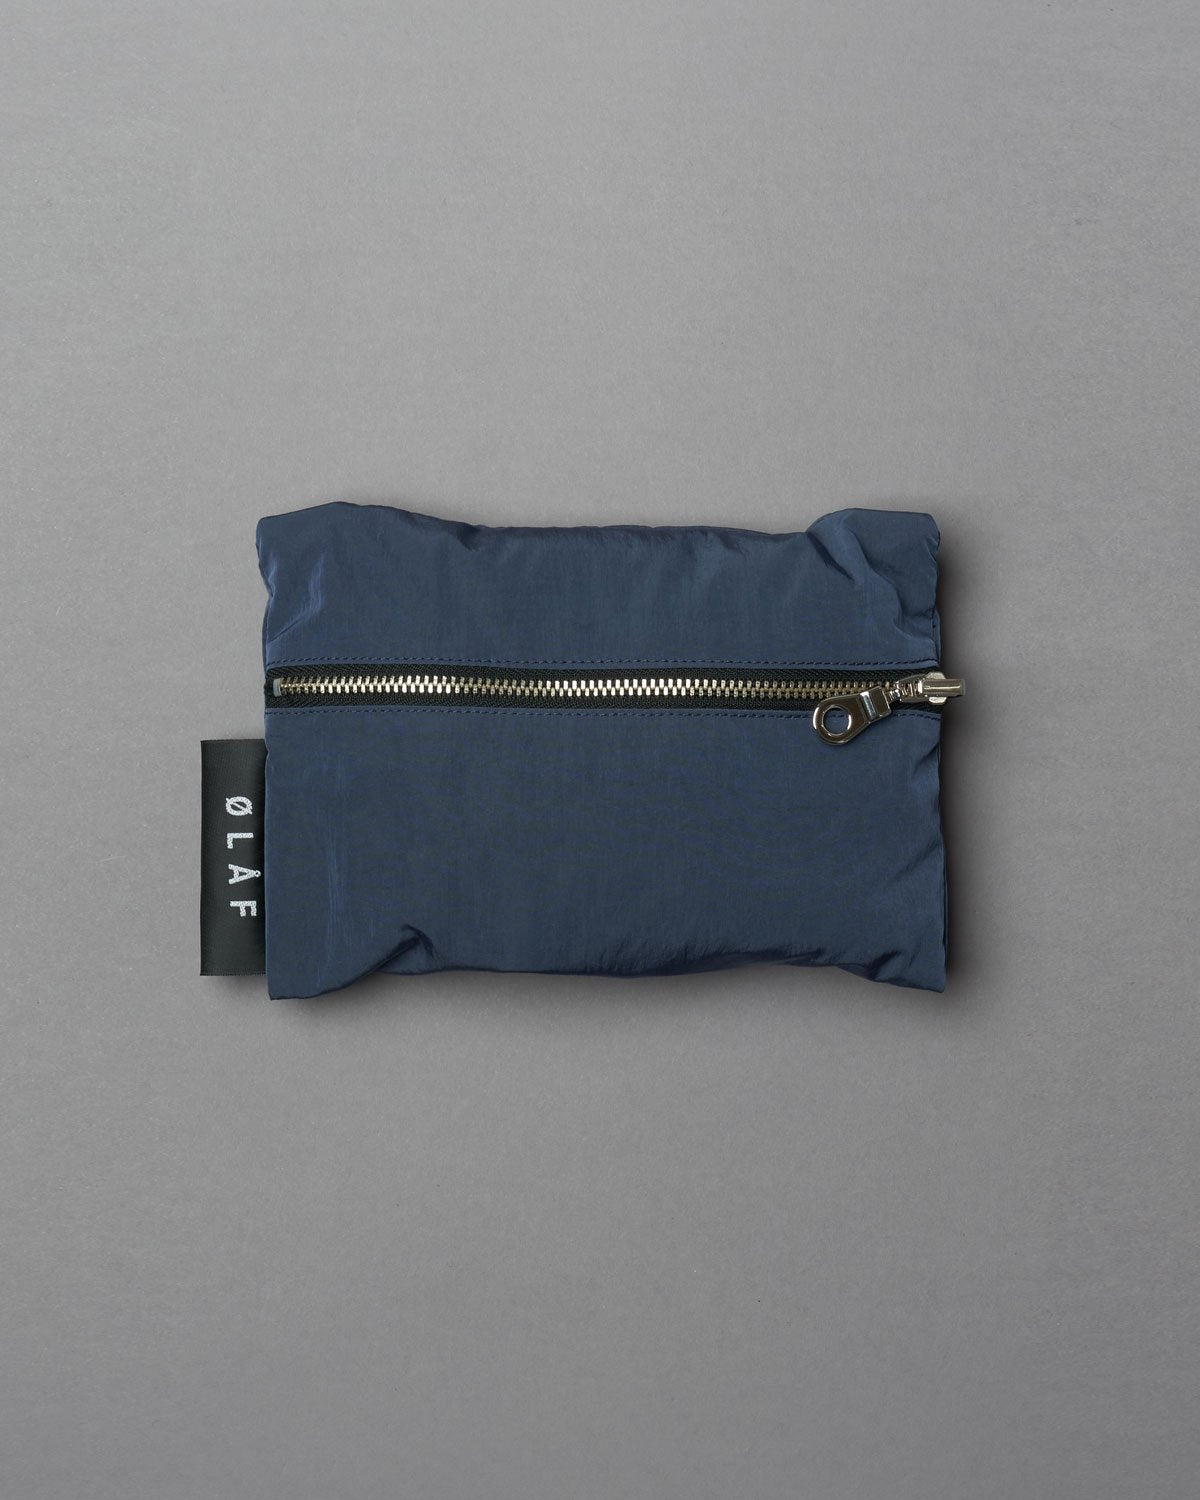 Packable Travel Tote Blue, made of blue Italian nylon. Metal Lampo zippers. Adjustable ØLÅF strap woven in black. Materials from Italy. Assembled in Portugal,  Made in Portugal.""